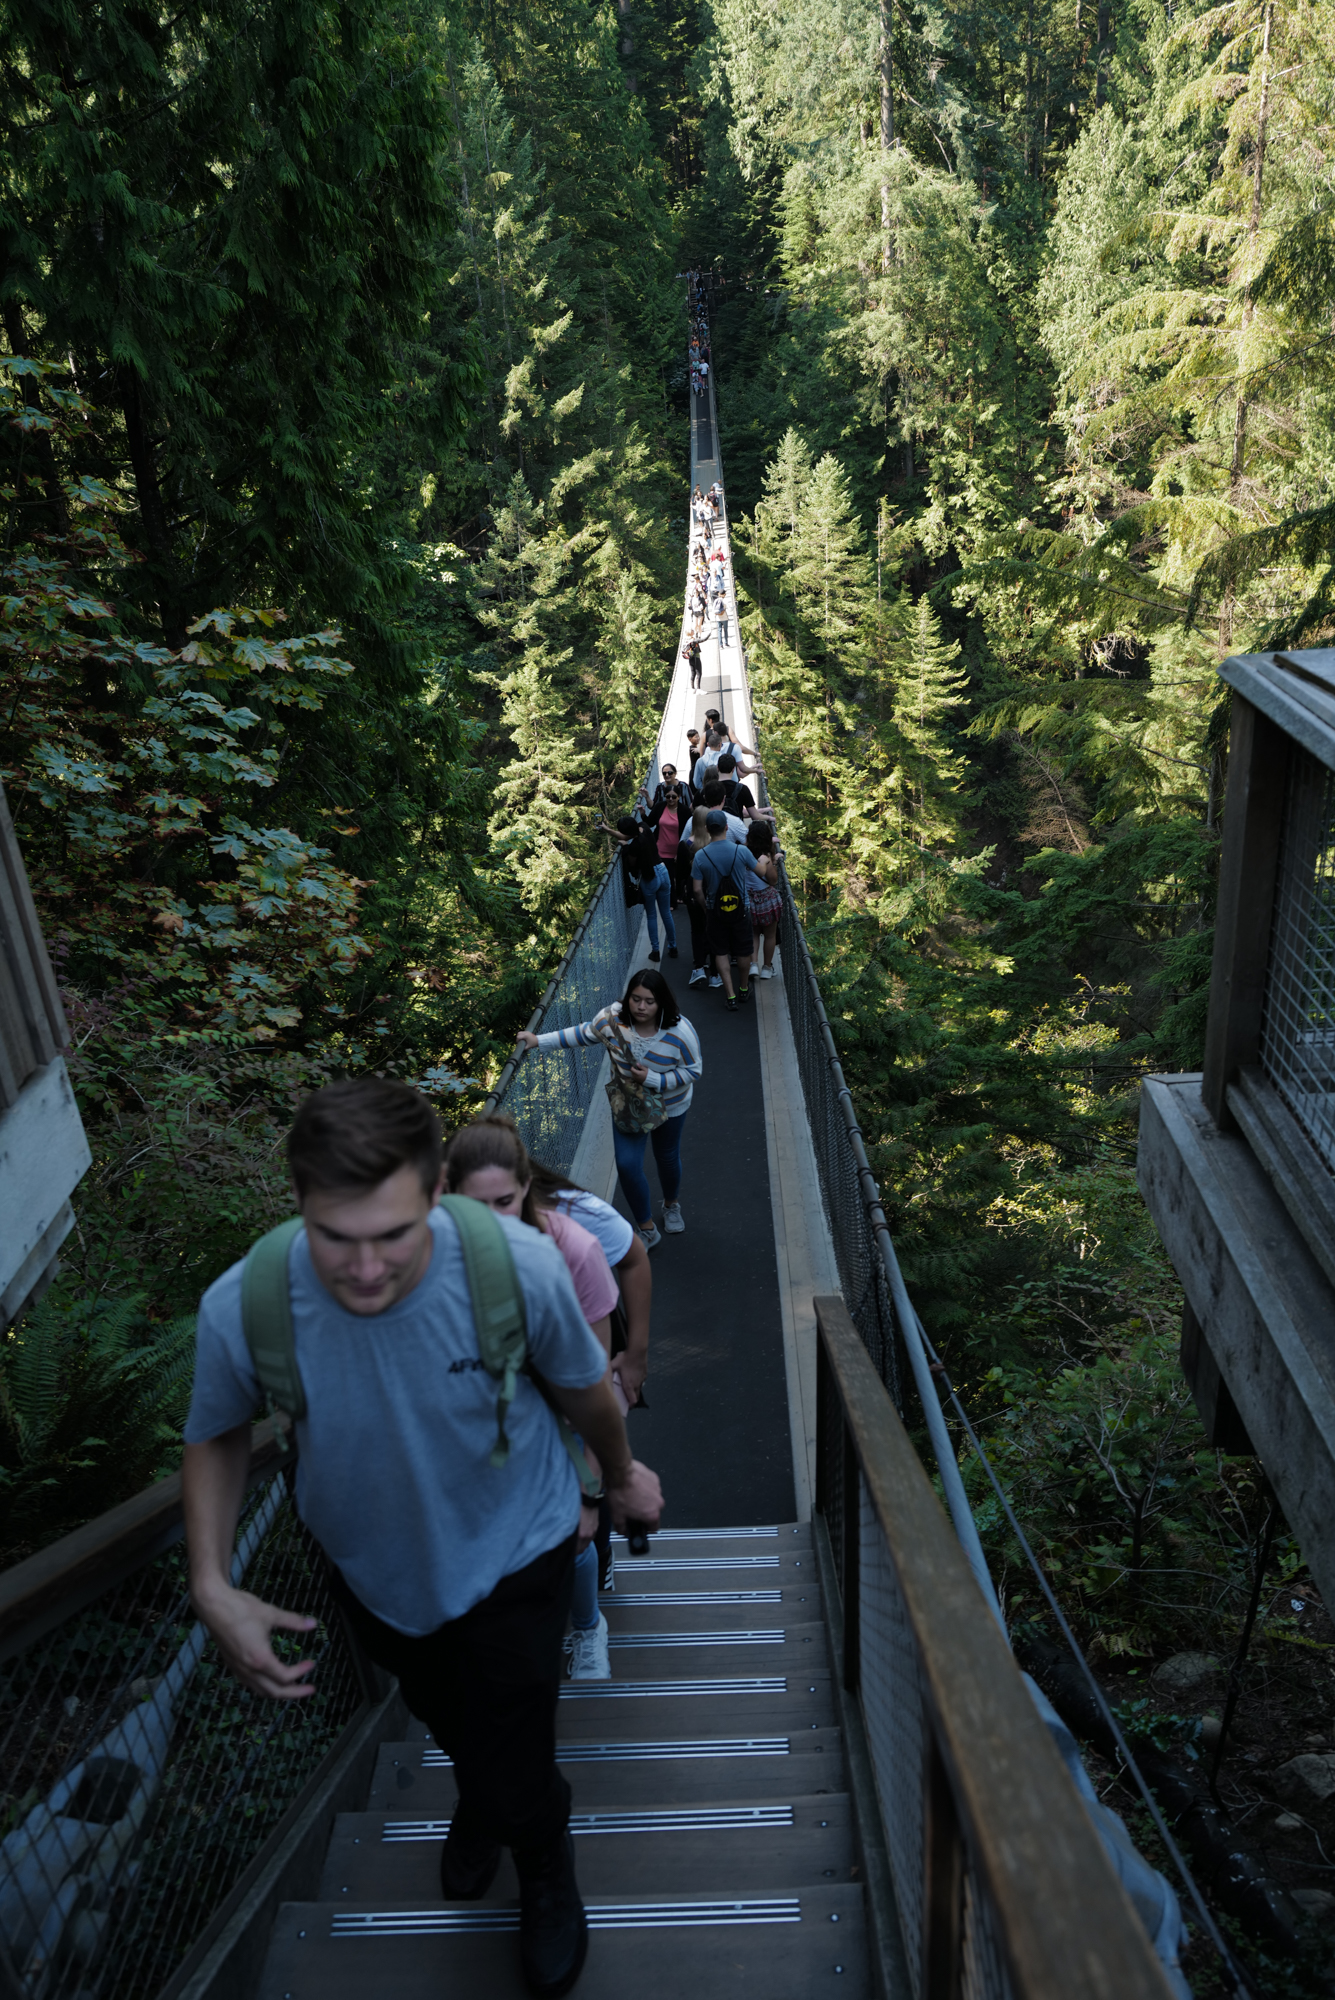 The Capilano Bridge